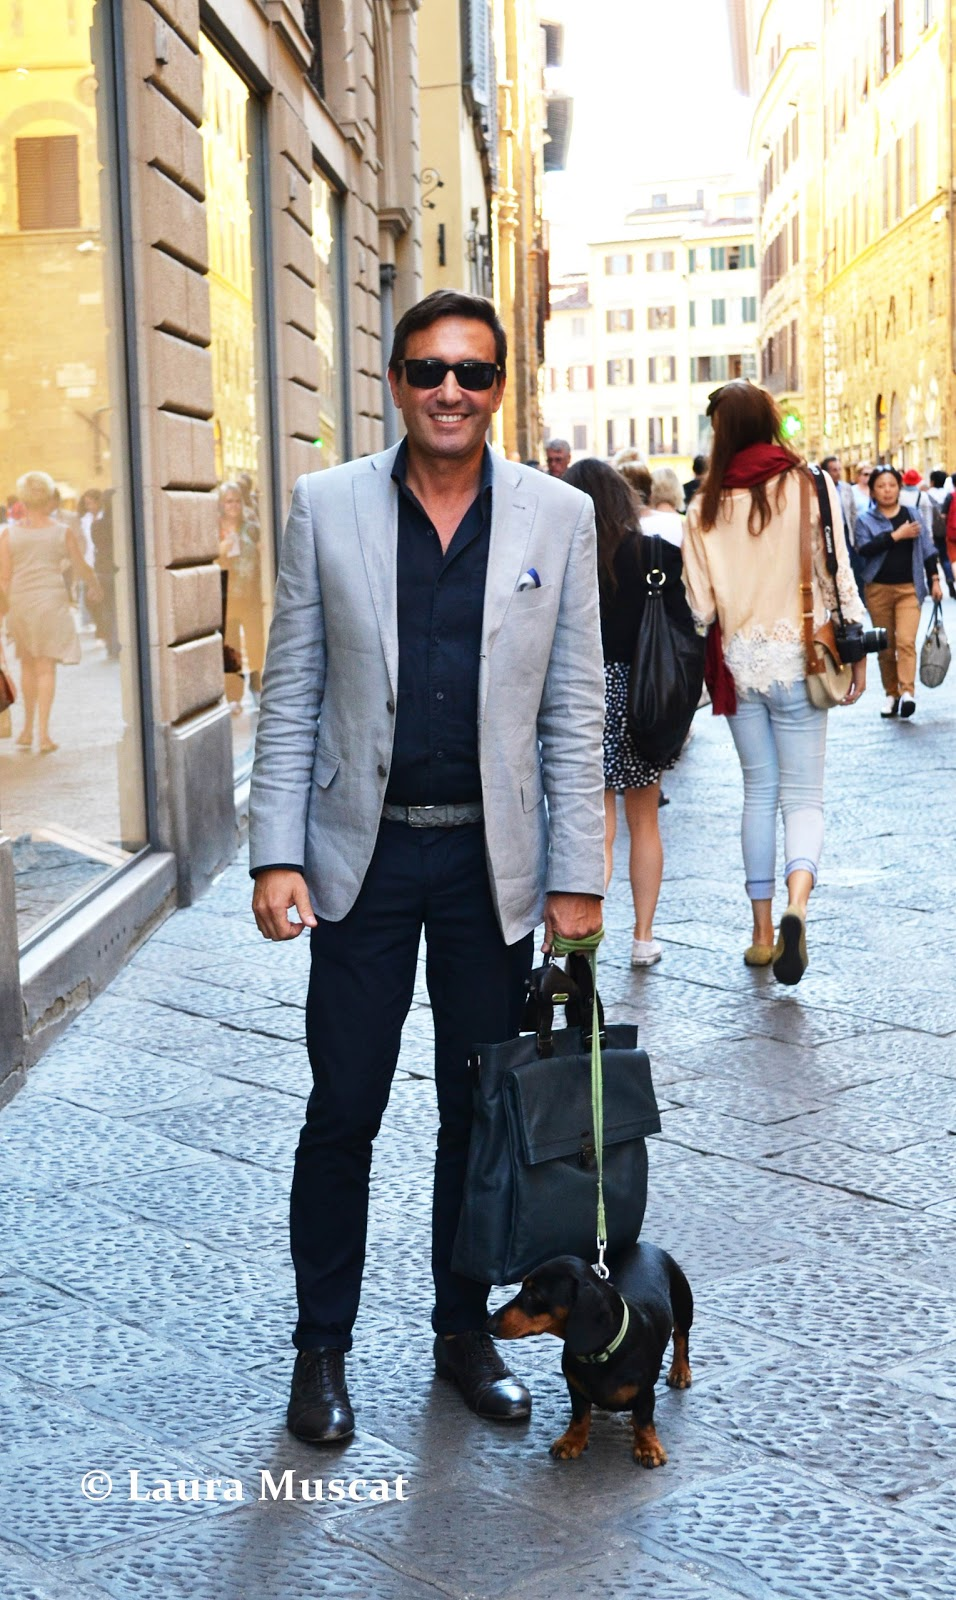 Florence Italy Fashion Trends